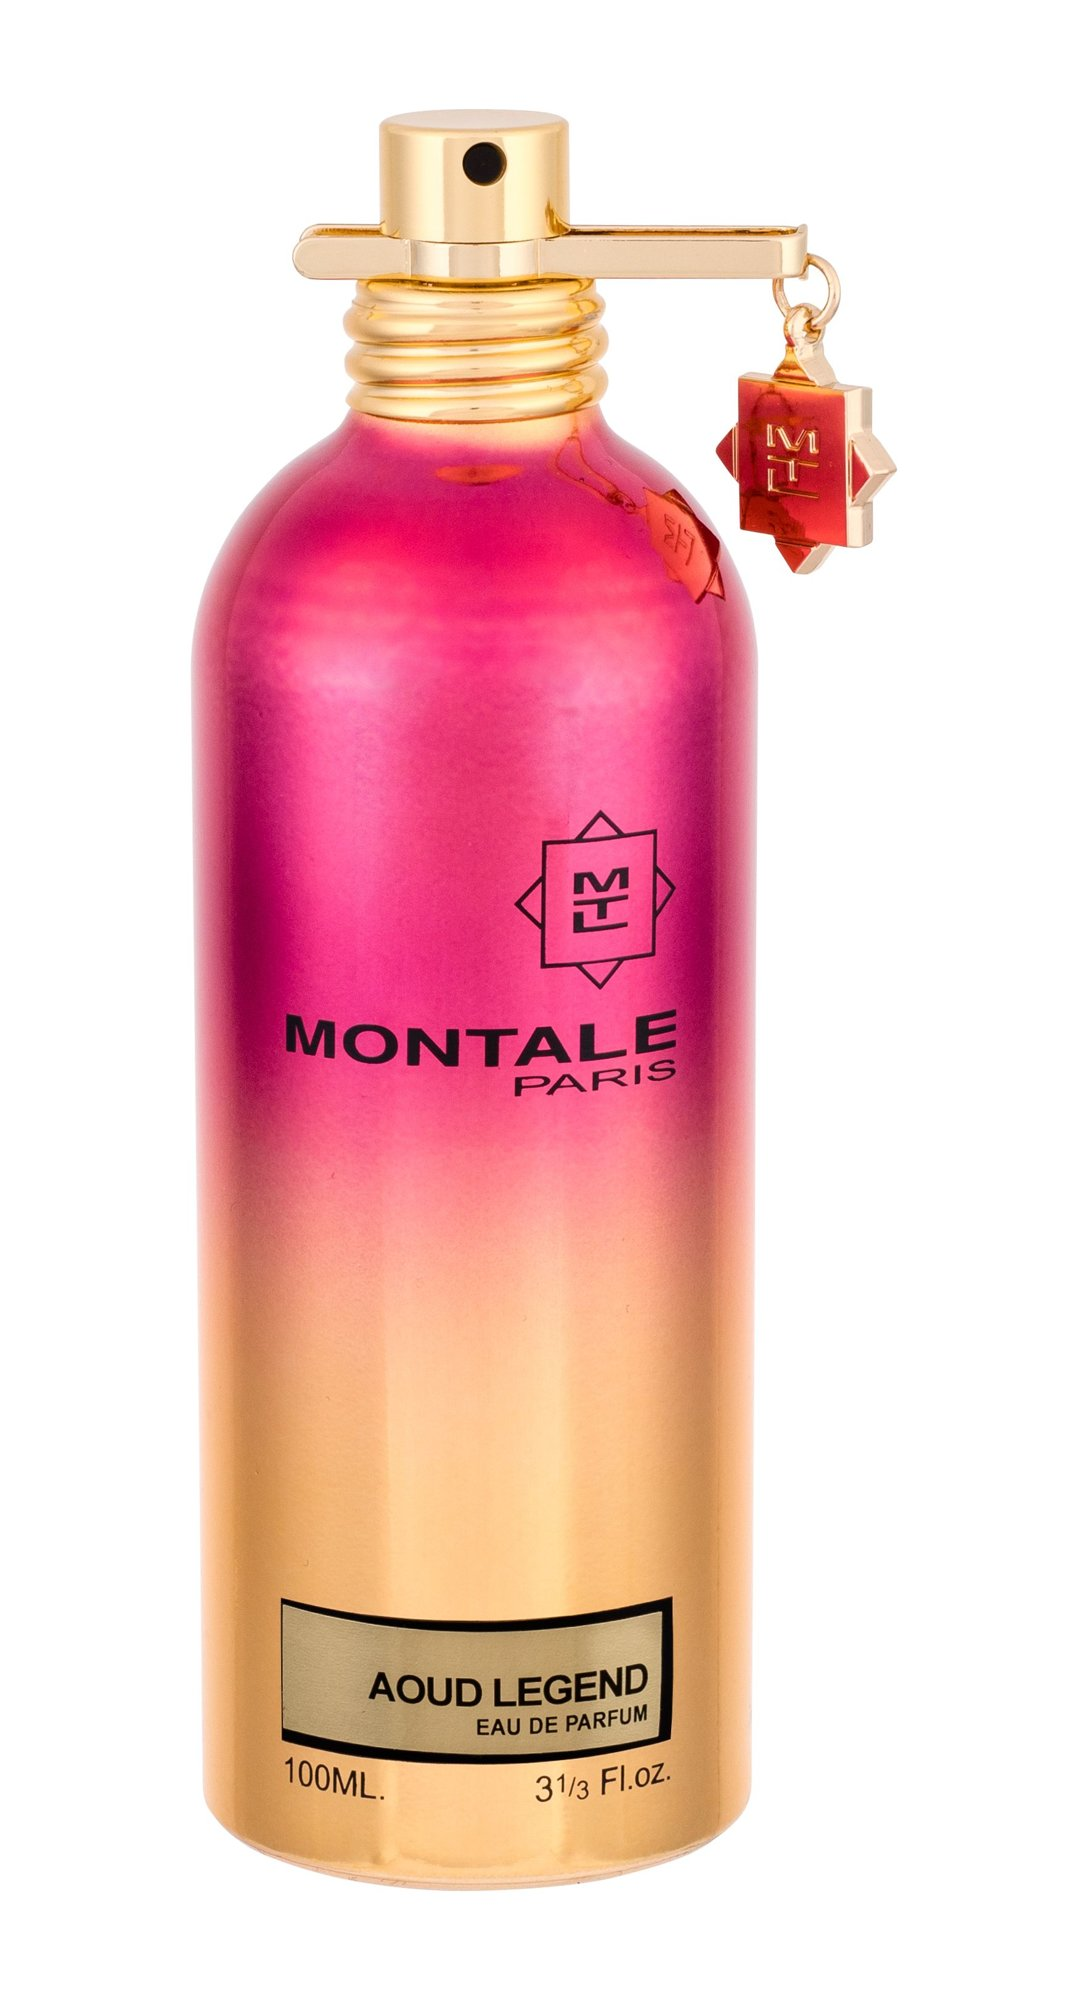 Montale Paris Aoud Legend Eau de Parfum 100ml